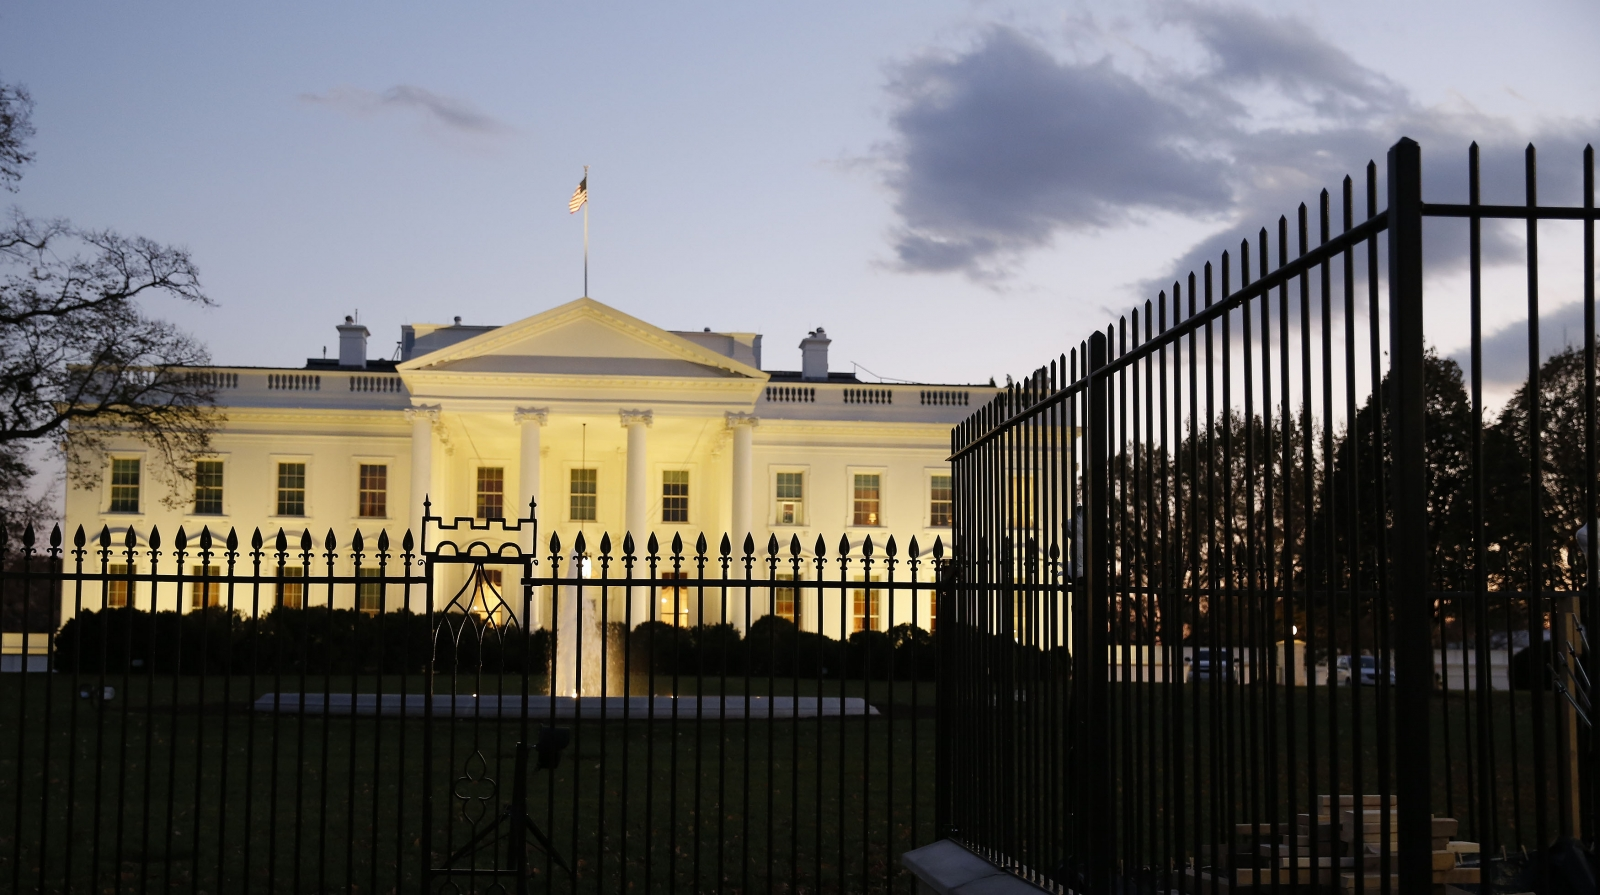 Woman carrying gun arrested outside White House